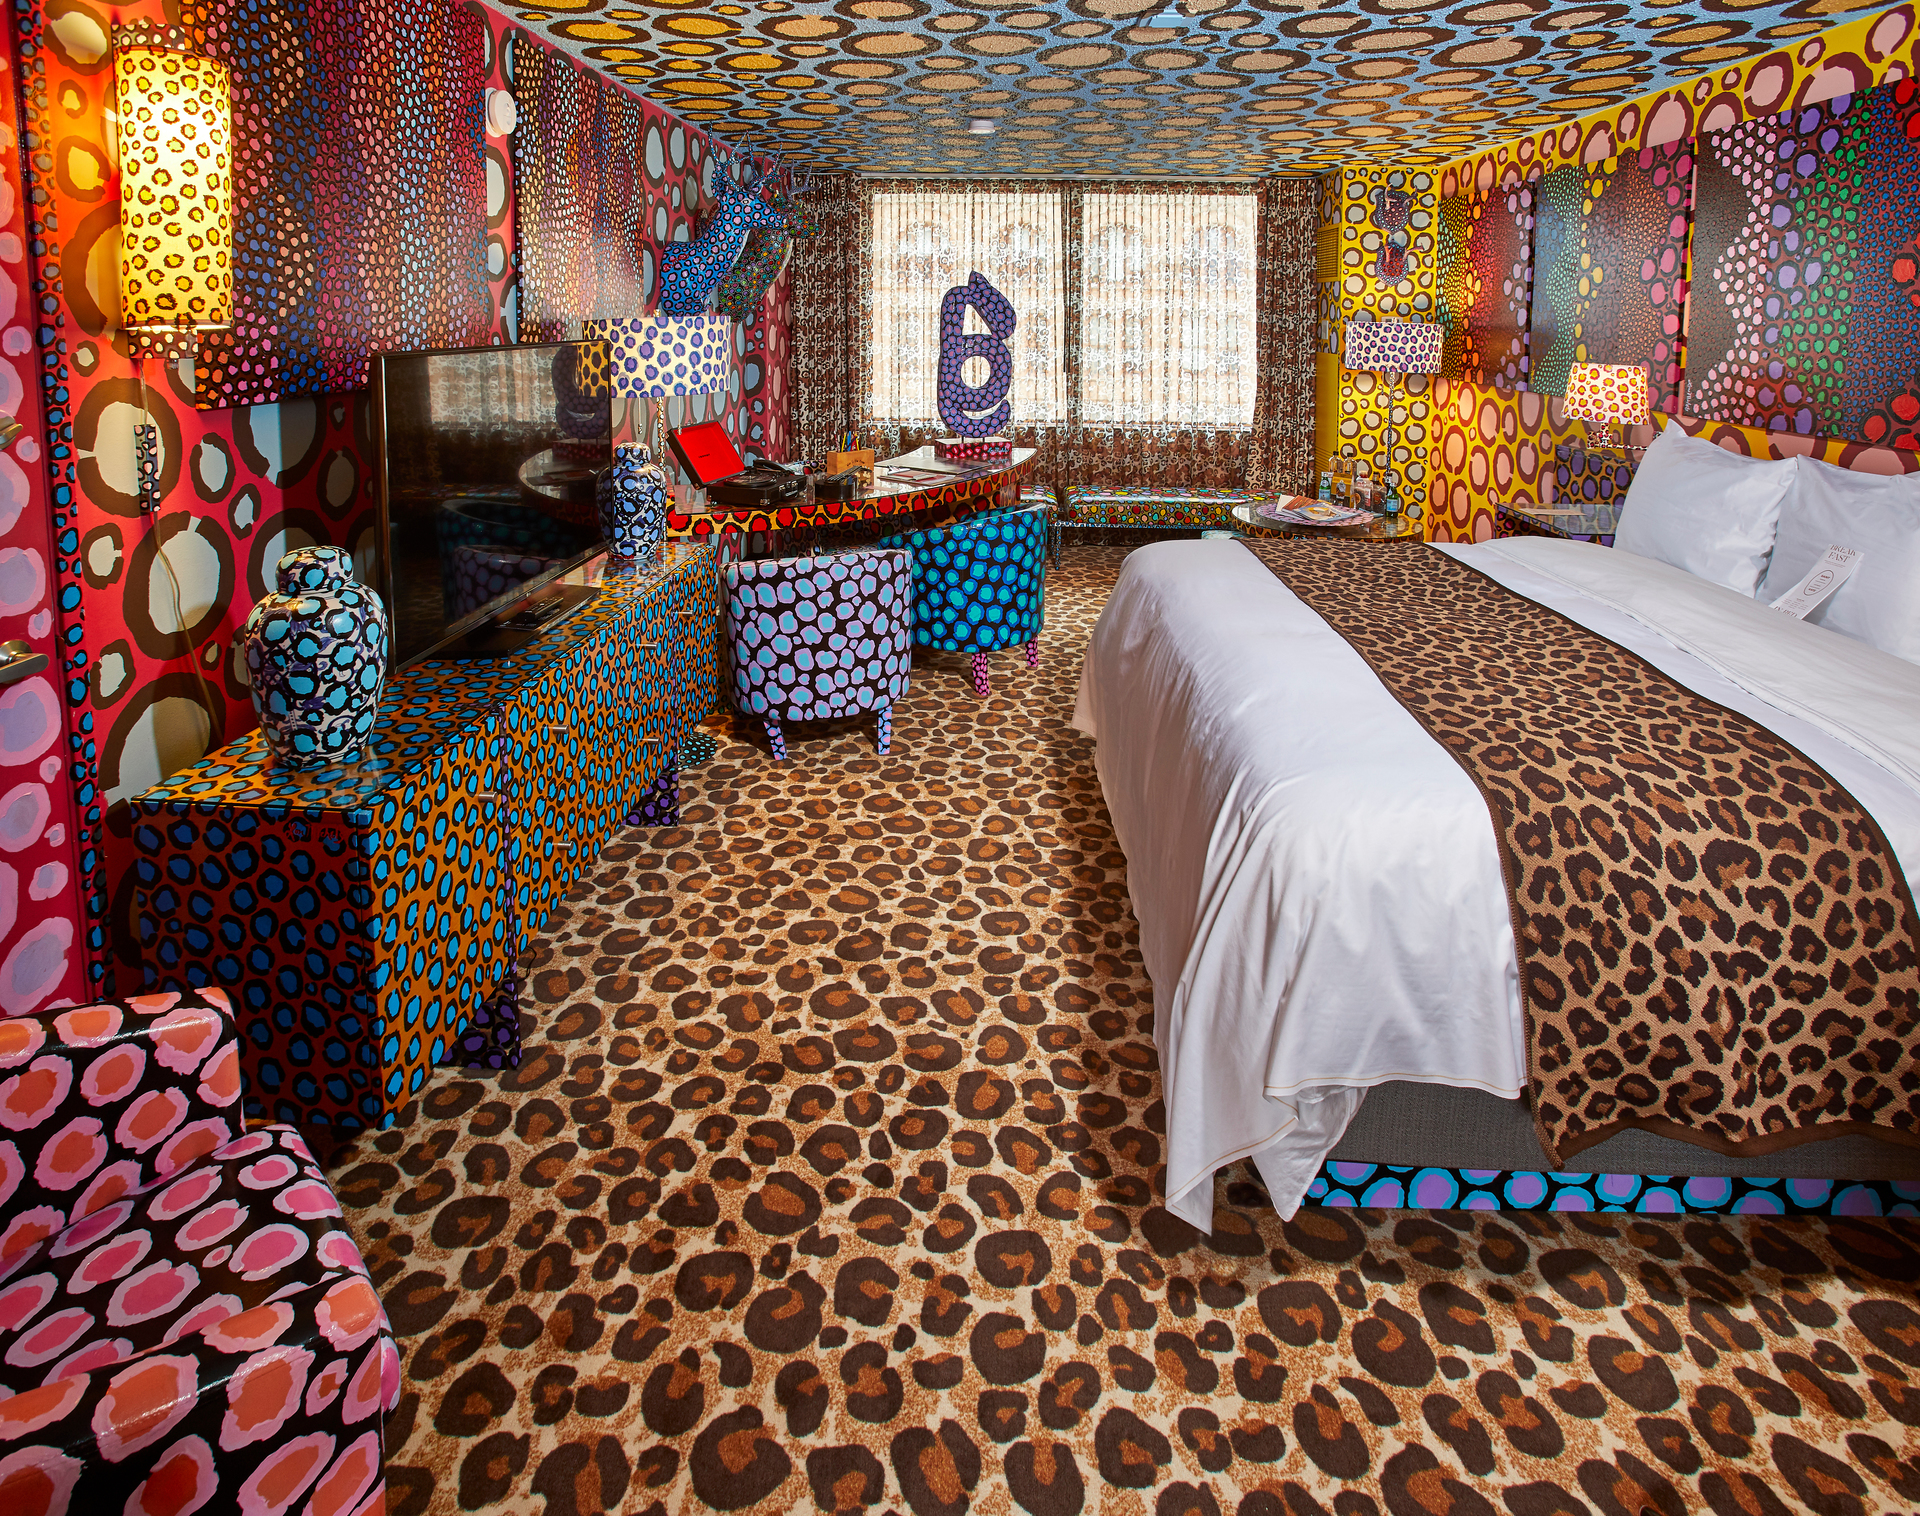 Five of the hotel's guest rooms are designed entirely by local artists, like the Leopard Room by Lon Michaels.